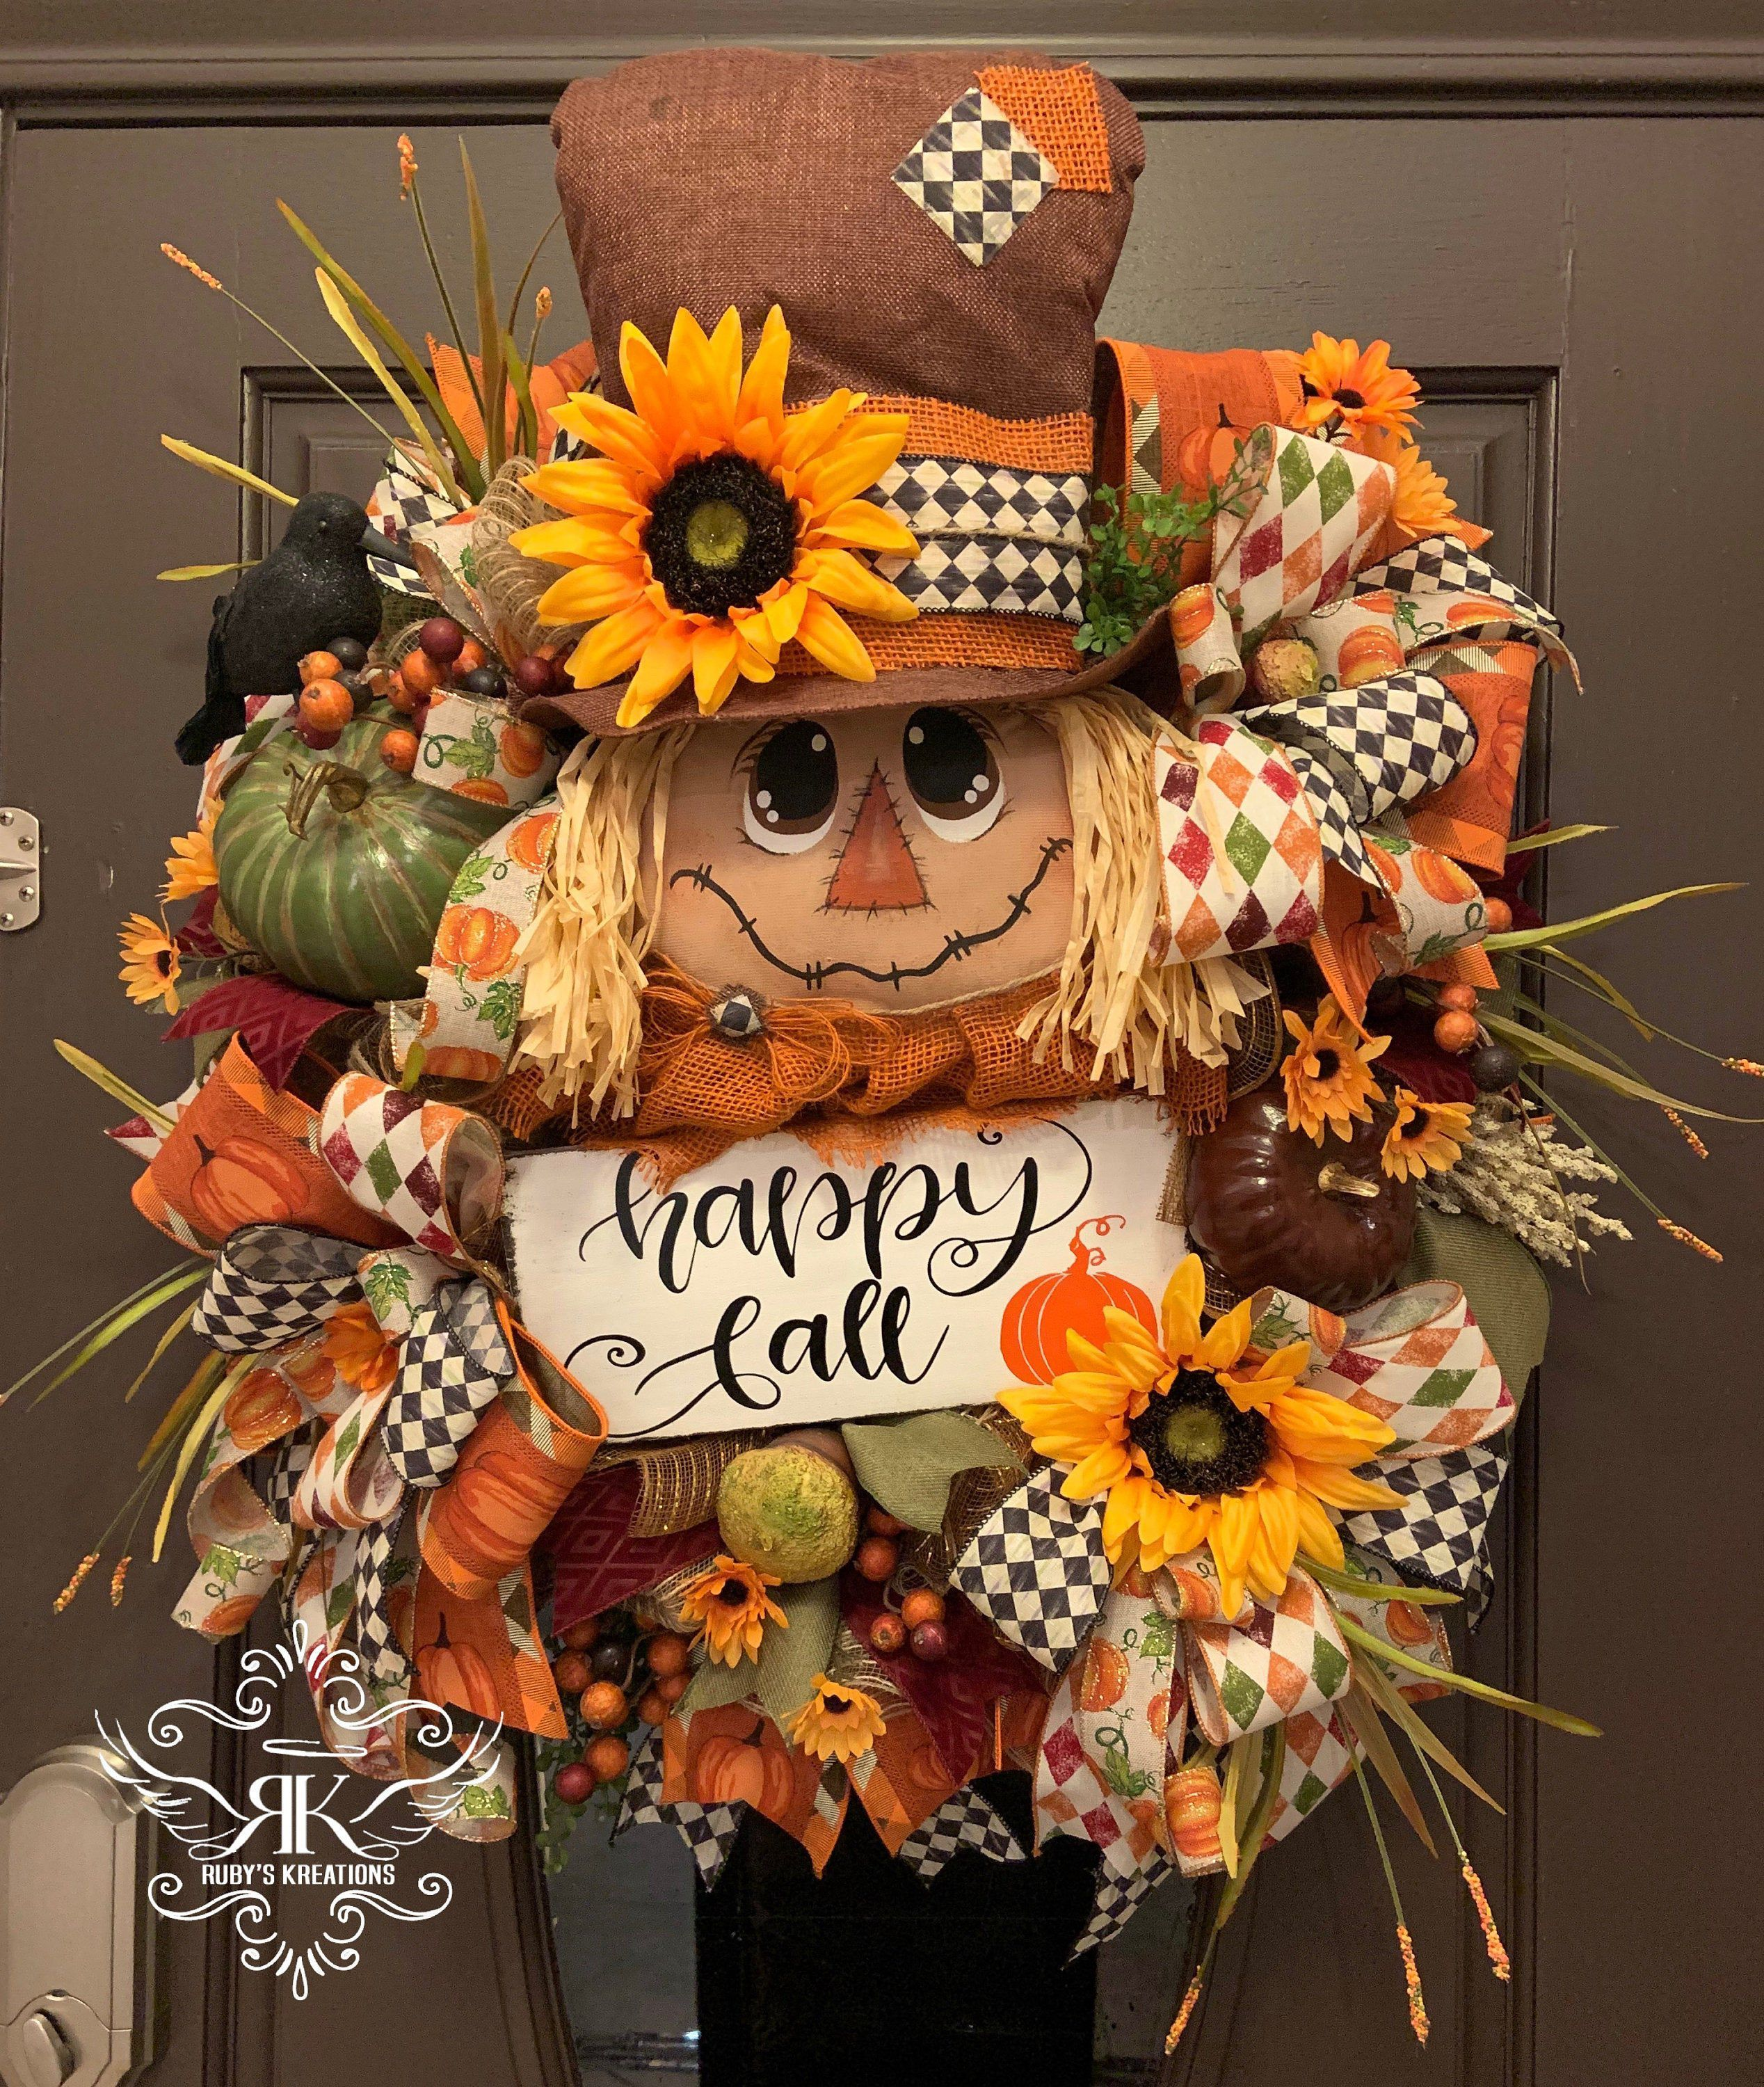 McKenzie Childs Wreath, Fall Wreath, Fall Swag, Scarecrow Wreath, Front Door Wreath, Door Decor, Fall Decor #scarecrowwreath Excited to share this item from my #etsy shop: McKenzie Childs Wreath, Fall Wreath, Fall Swag, Scarecrow Wreath, Front Door Wreath, Door Decor, Fall Decor #scarecrowwreath